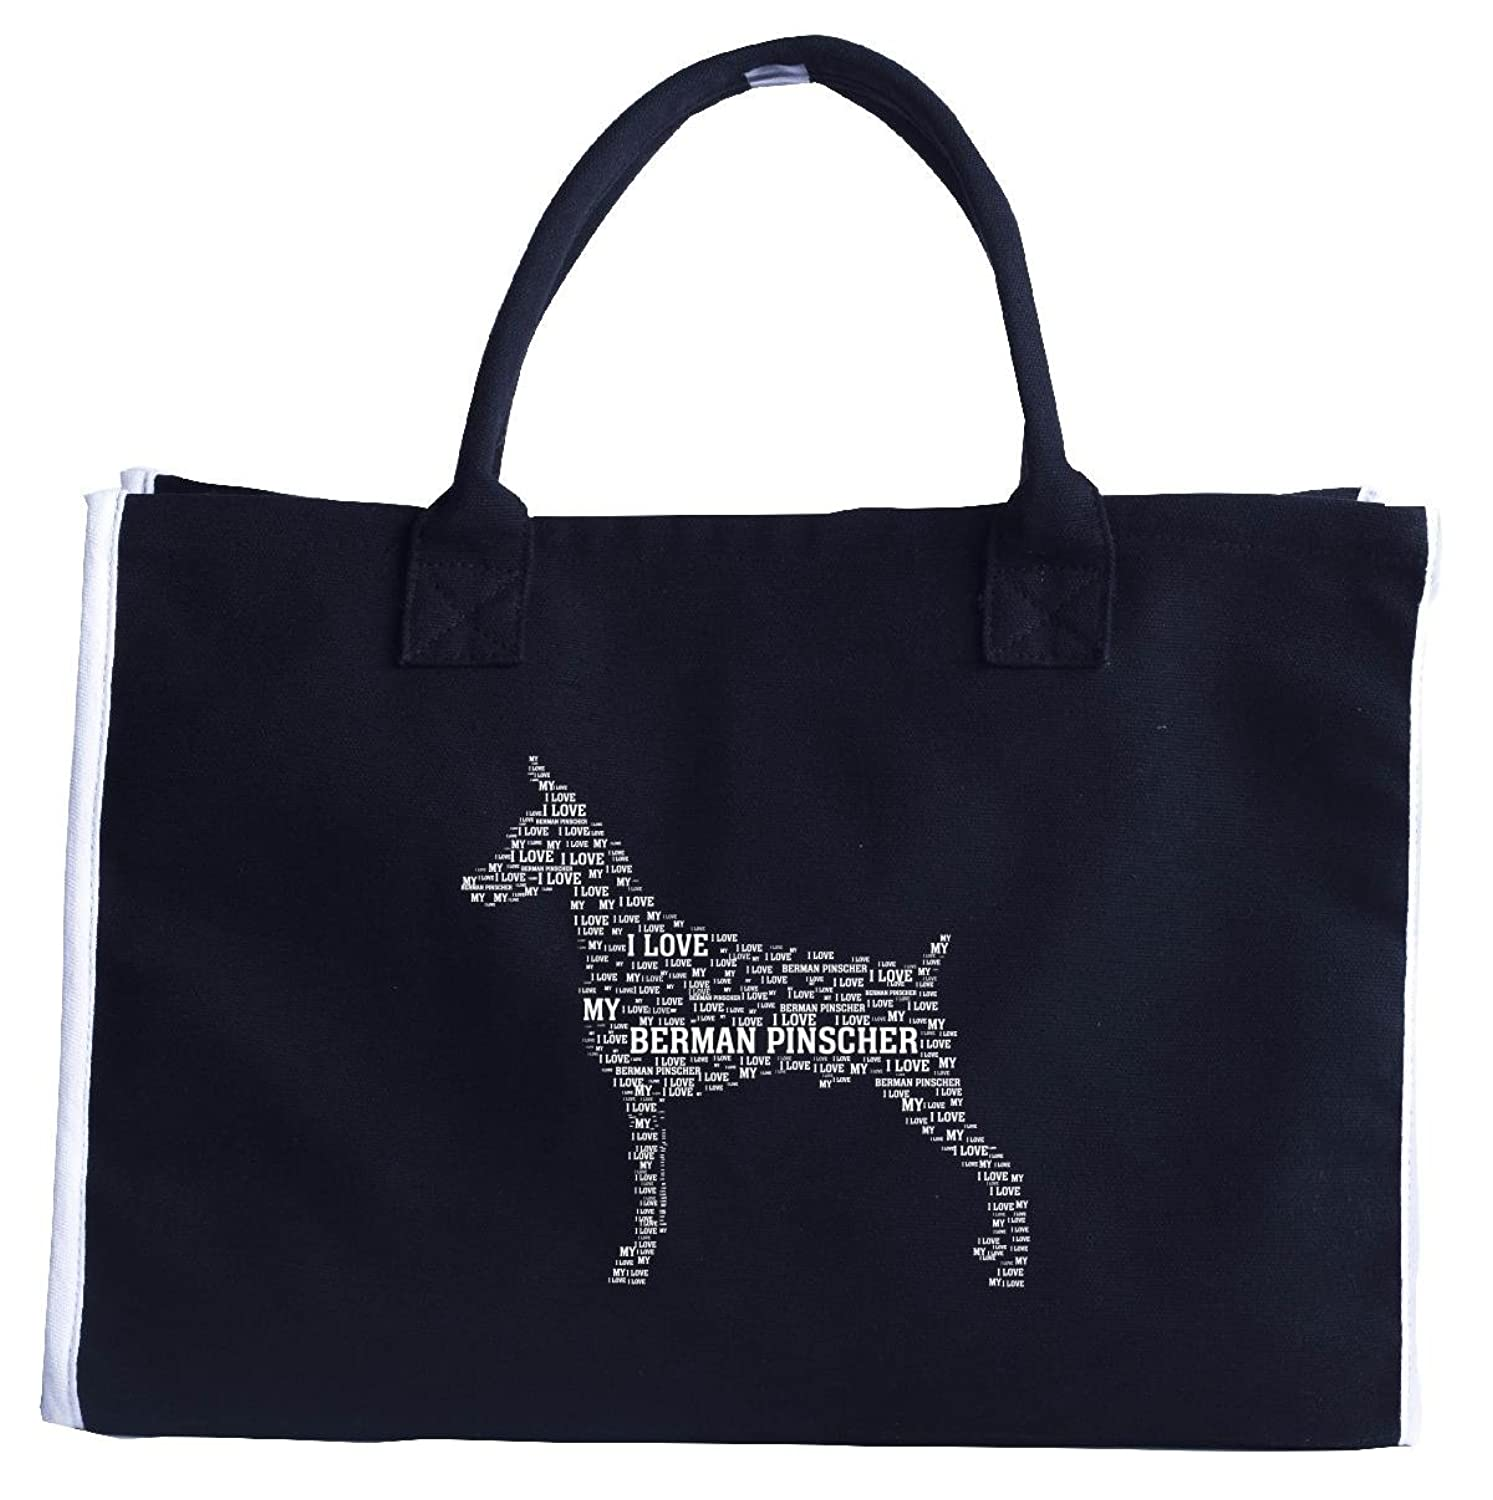 I Love My Doberman Pinscher. Funny Gift For Pet Lovers - Fashion Tote Bag